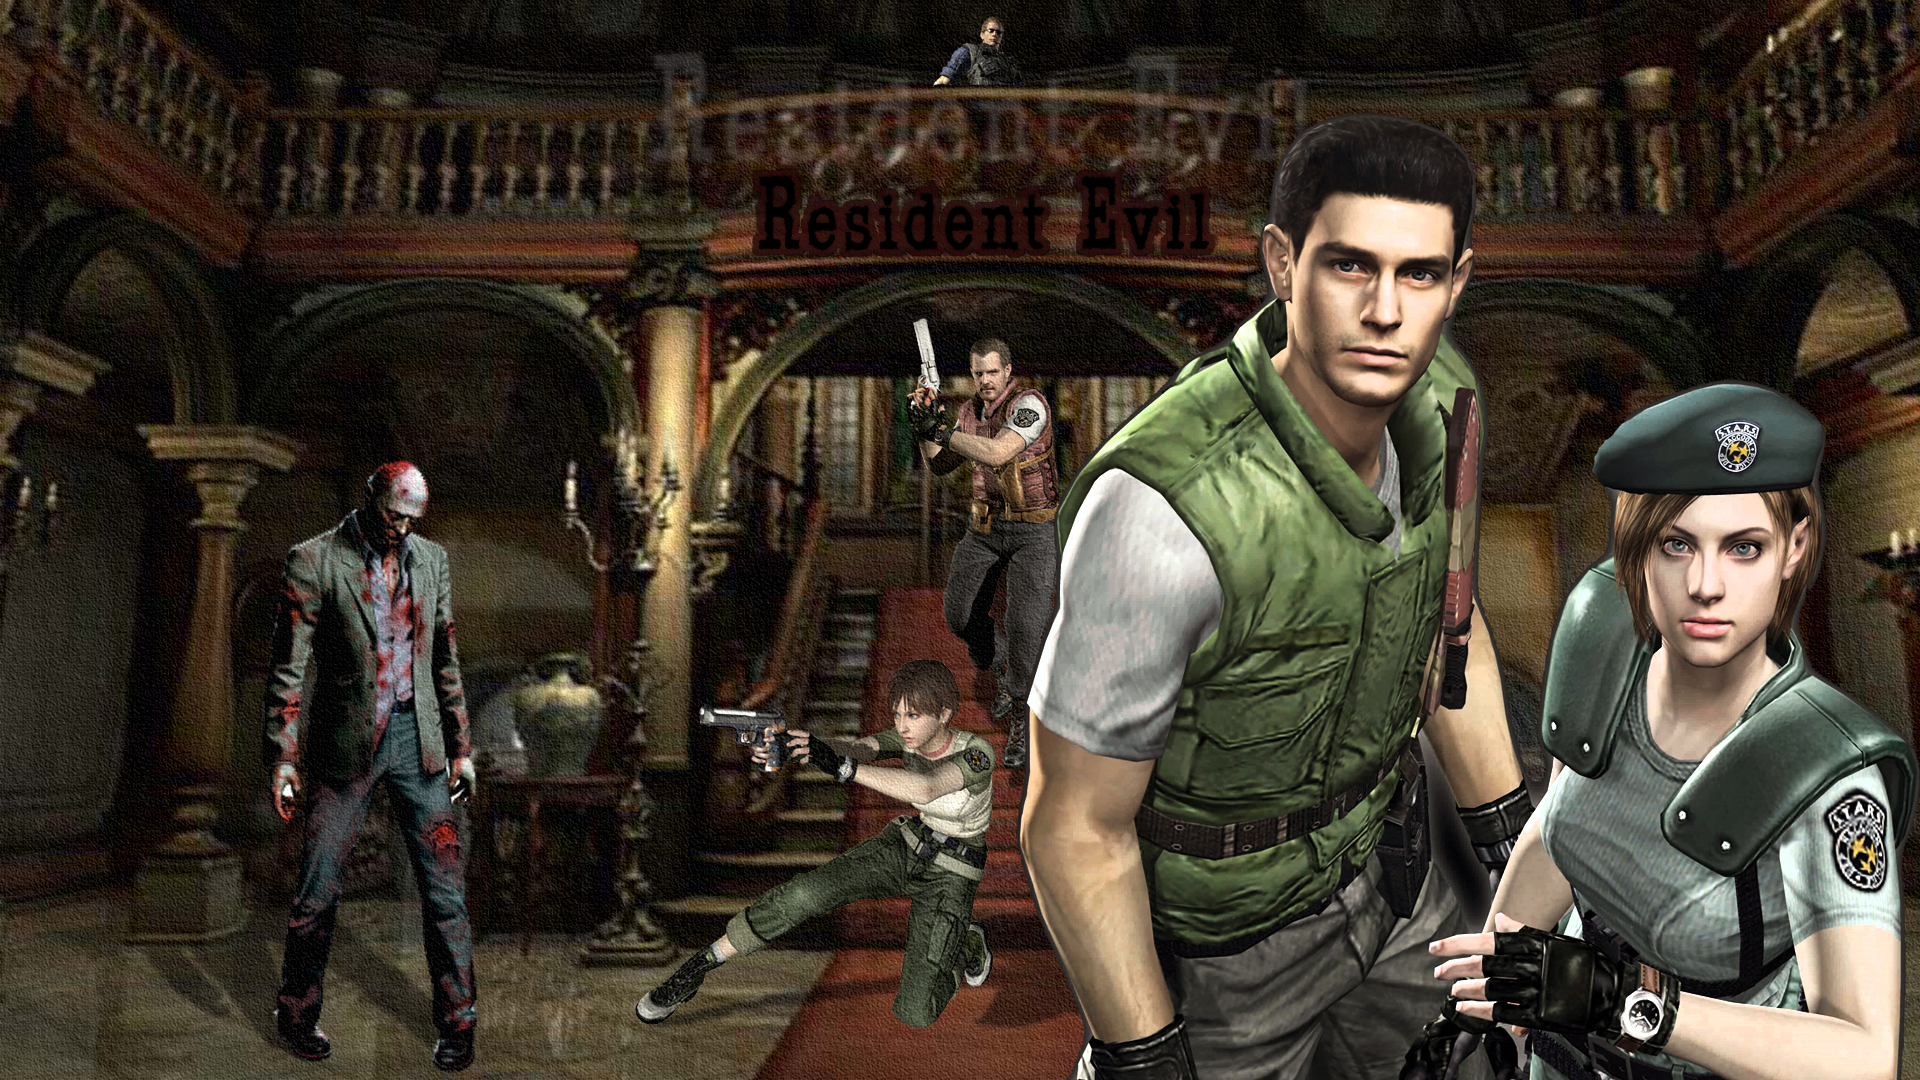 Resident-Evil-1-PC-Version